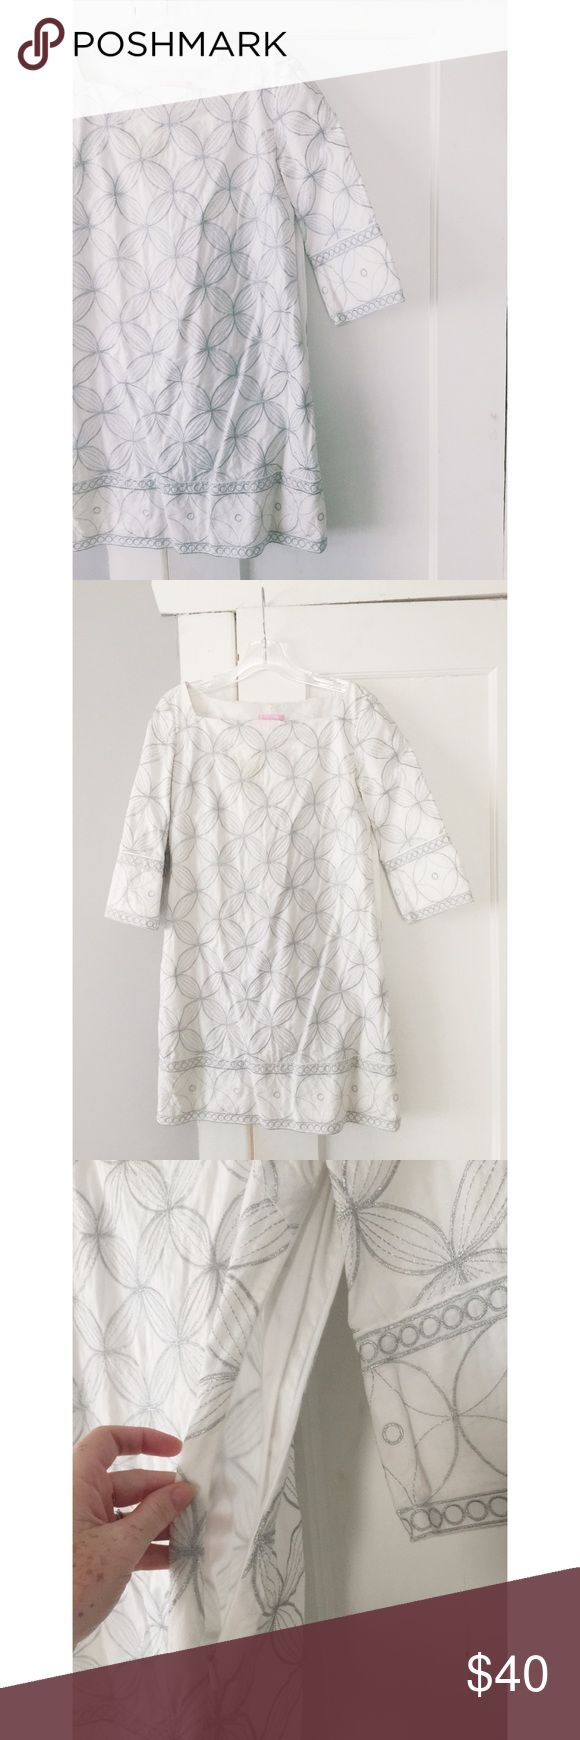 Lilly Pulitzer Embroidered Dress Lilly Pulitzer Embroidered Dress.  White with silver embroidery throughout.  Women's size 4.  Size zipper fully working.  Some discoloration on the inside of the neckline (as seen in photo) good condition overall. Lilly Pulitzer Dresses